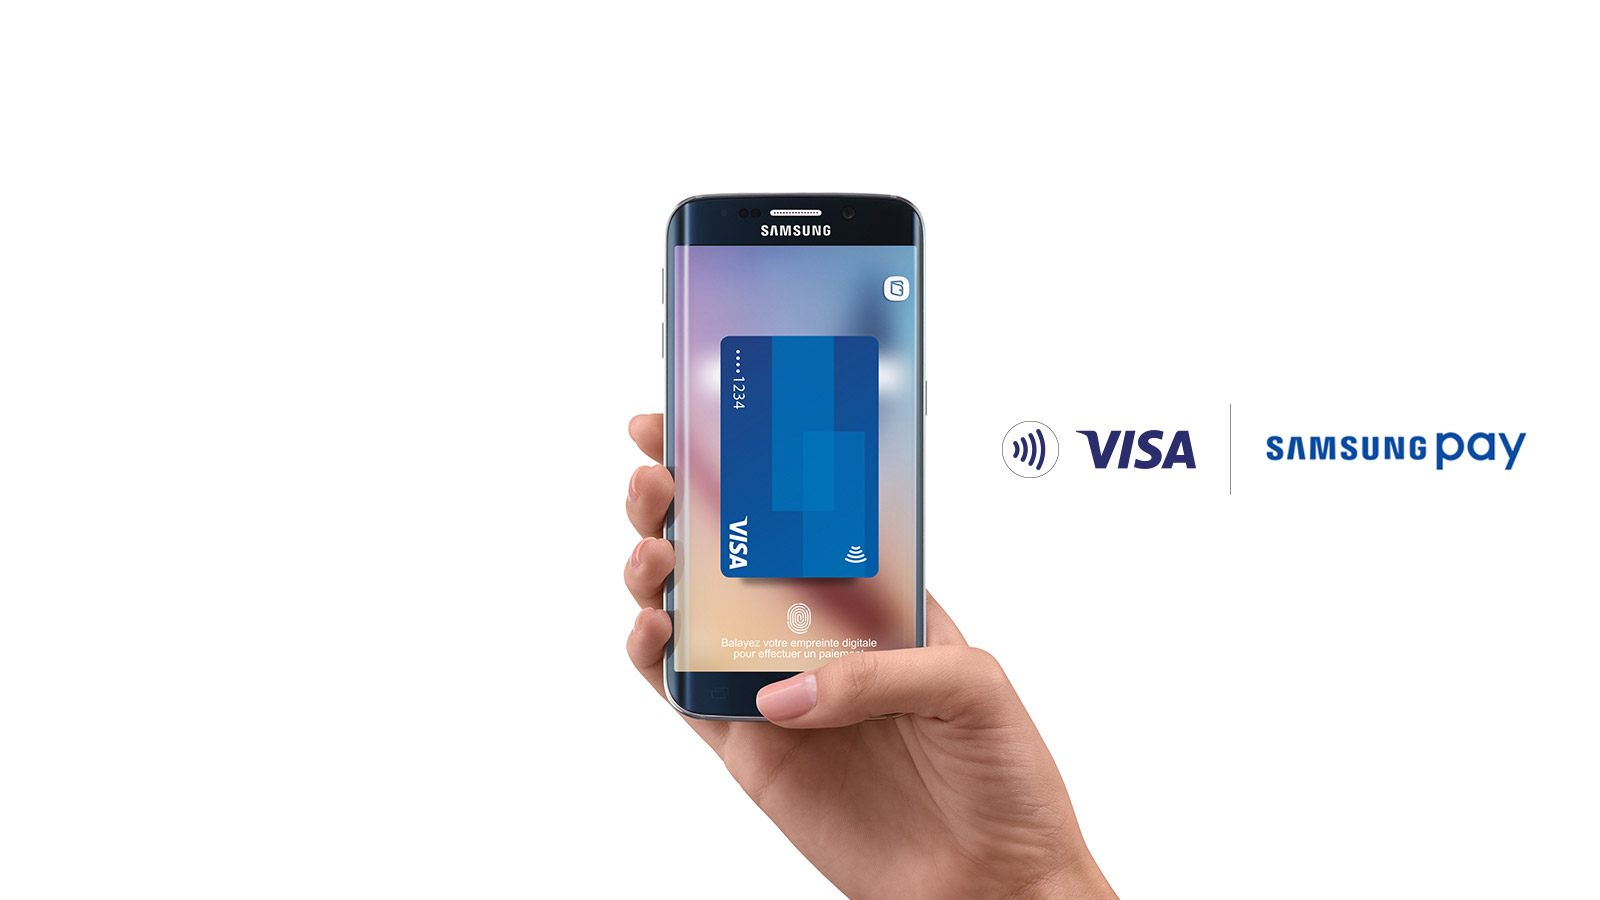 Samsung Pay arrive bientôt en France